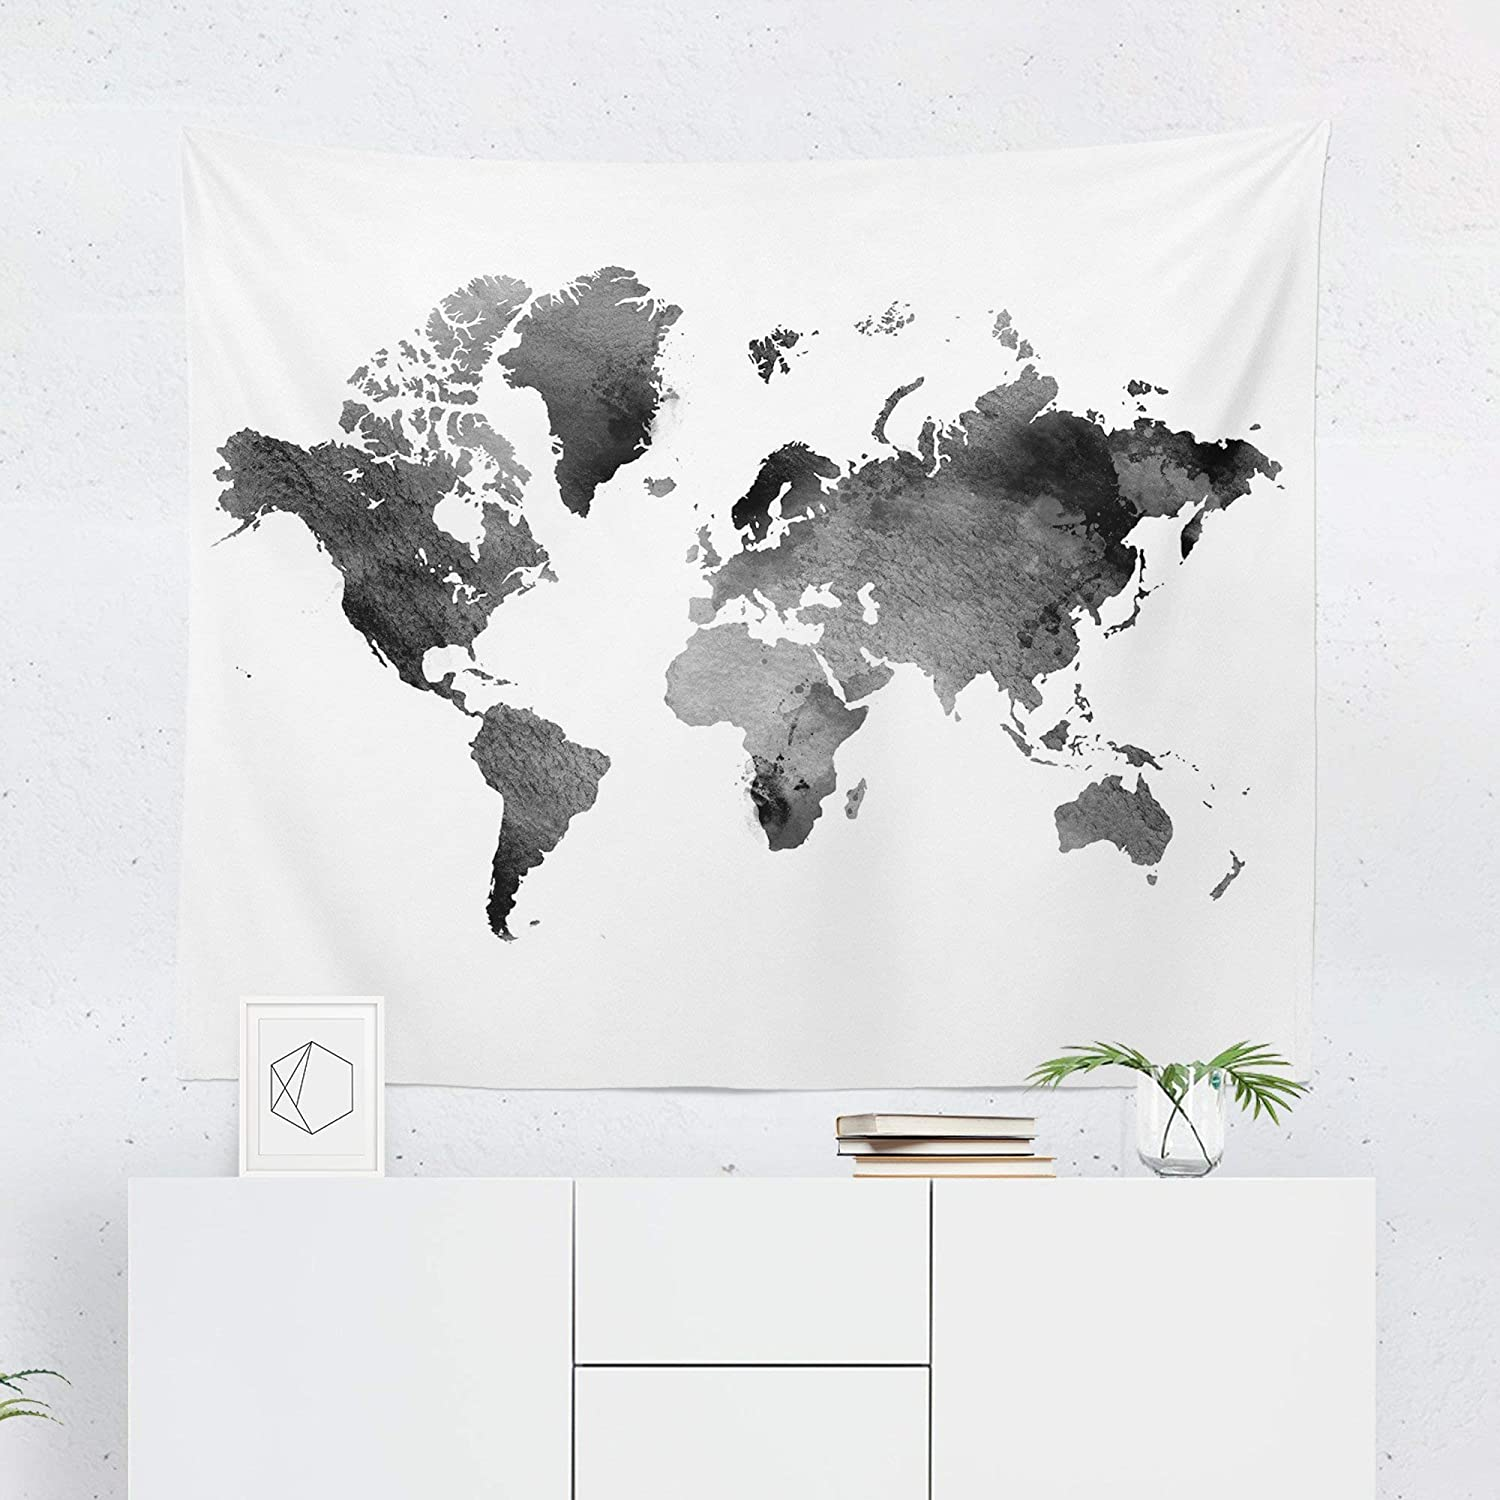 Watercolor Black World Map Tapestry - Maps Global White Wall Tapestries on print map of argentina, print map of massachusetts, print map of bulgaria, print map of africa, print map of florida, print map of united states, print blank world map, print map of india, print map of armenia, print map of seven continents, print map of europe, print map of london, print map of jamaica, print map of new zealand, print map of france, print map of central america, google maps of world, print map of ethiopia, print map of usa, print map of denmark,